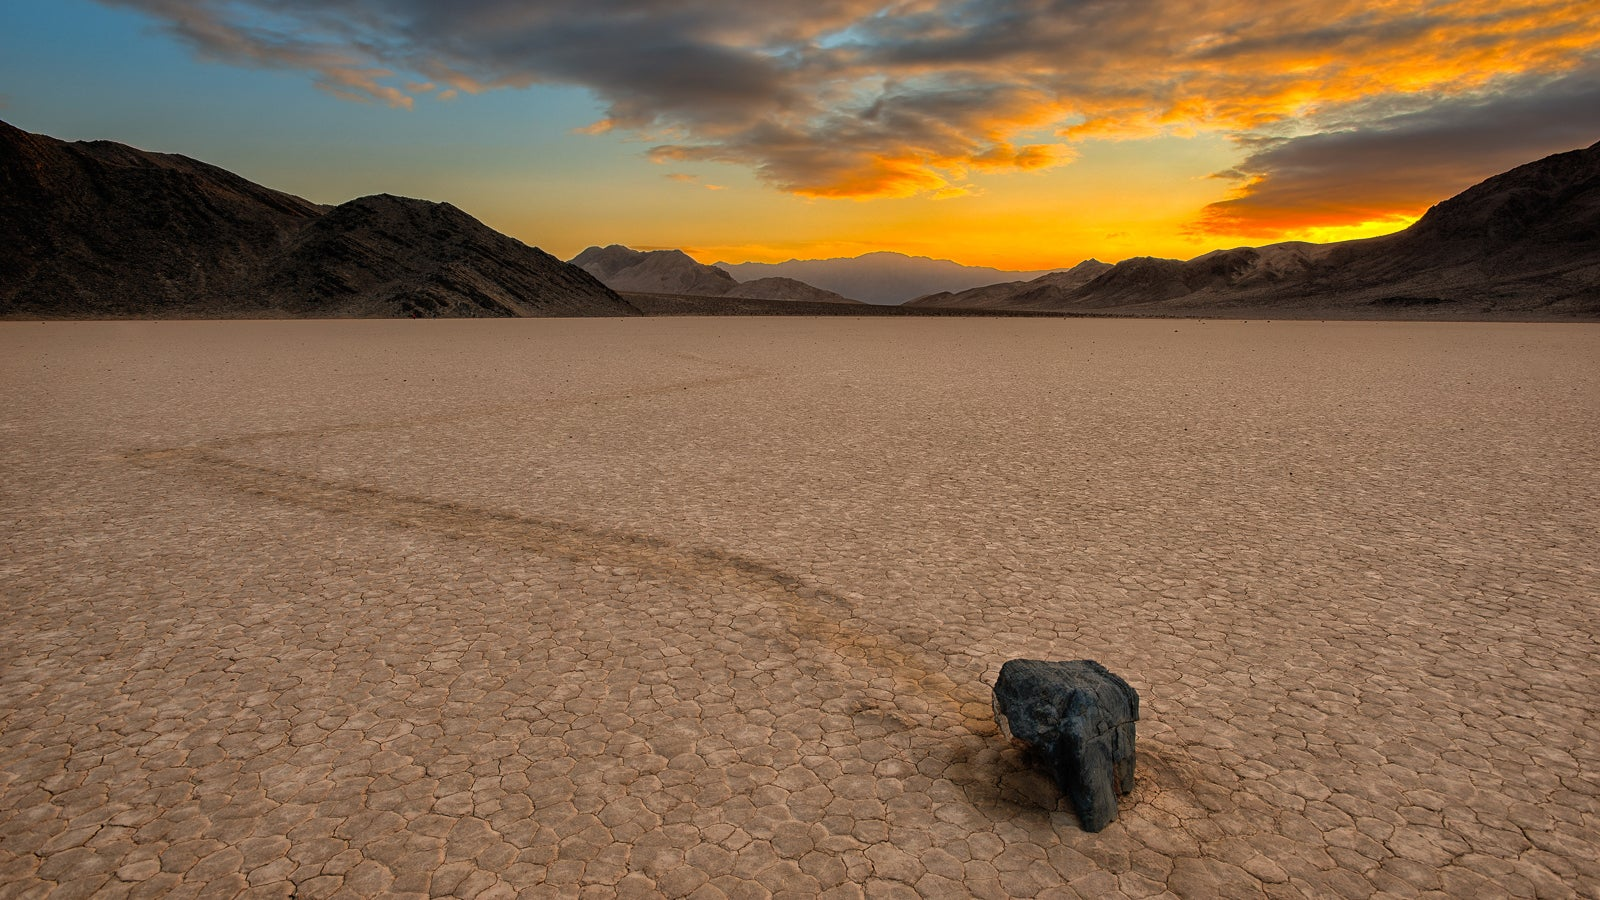 Sailing Stones of Death Valley, Explained